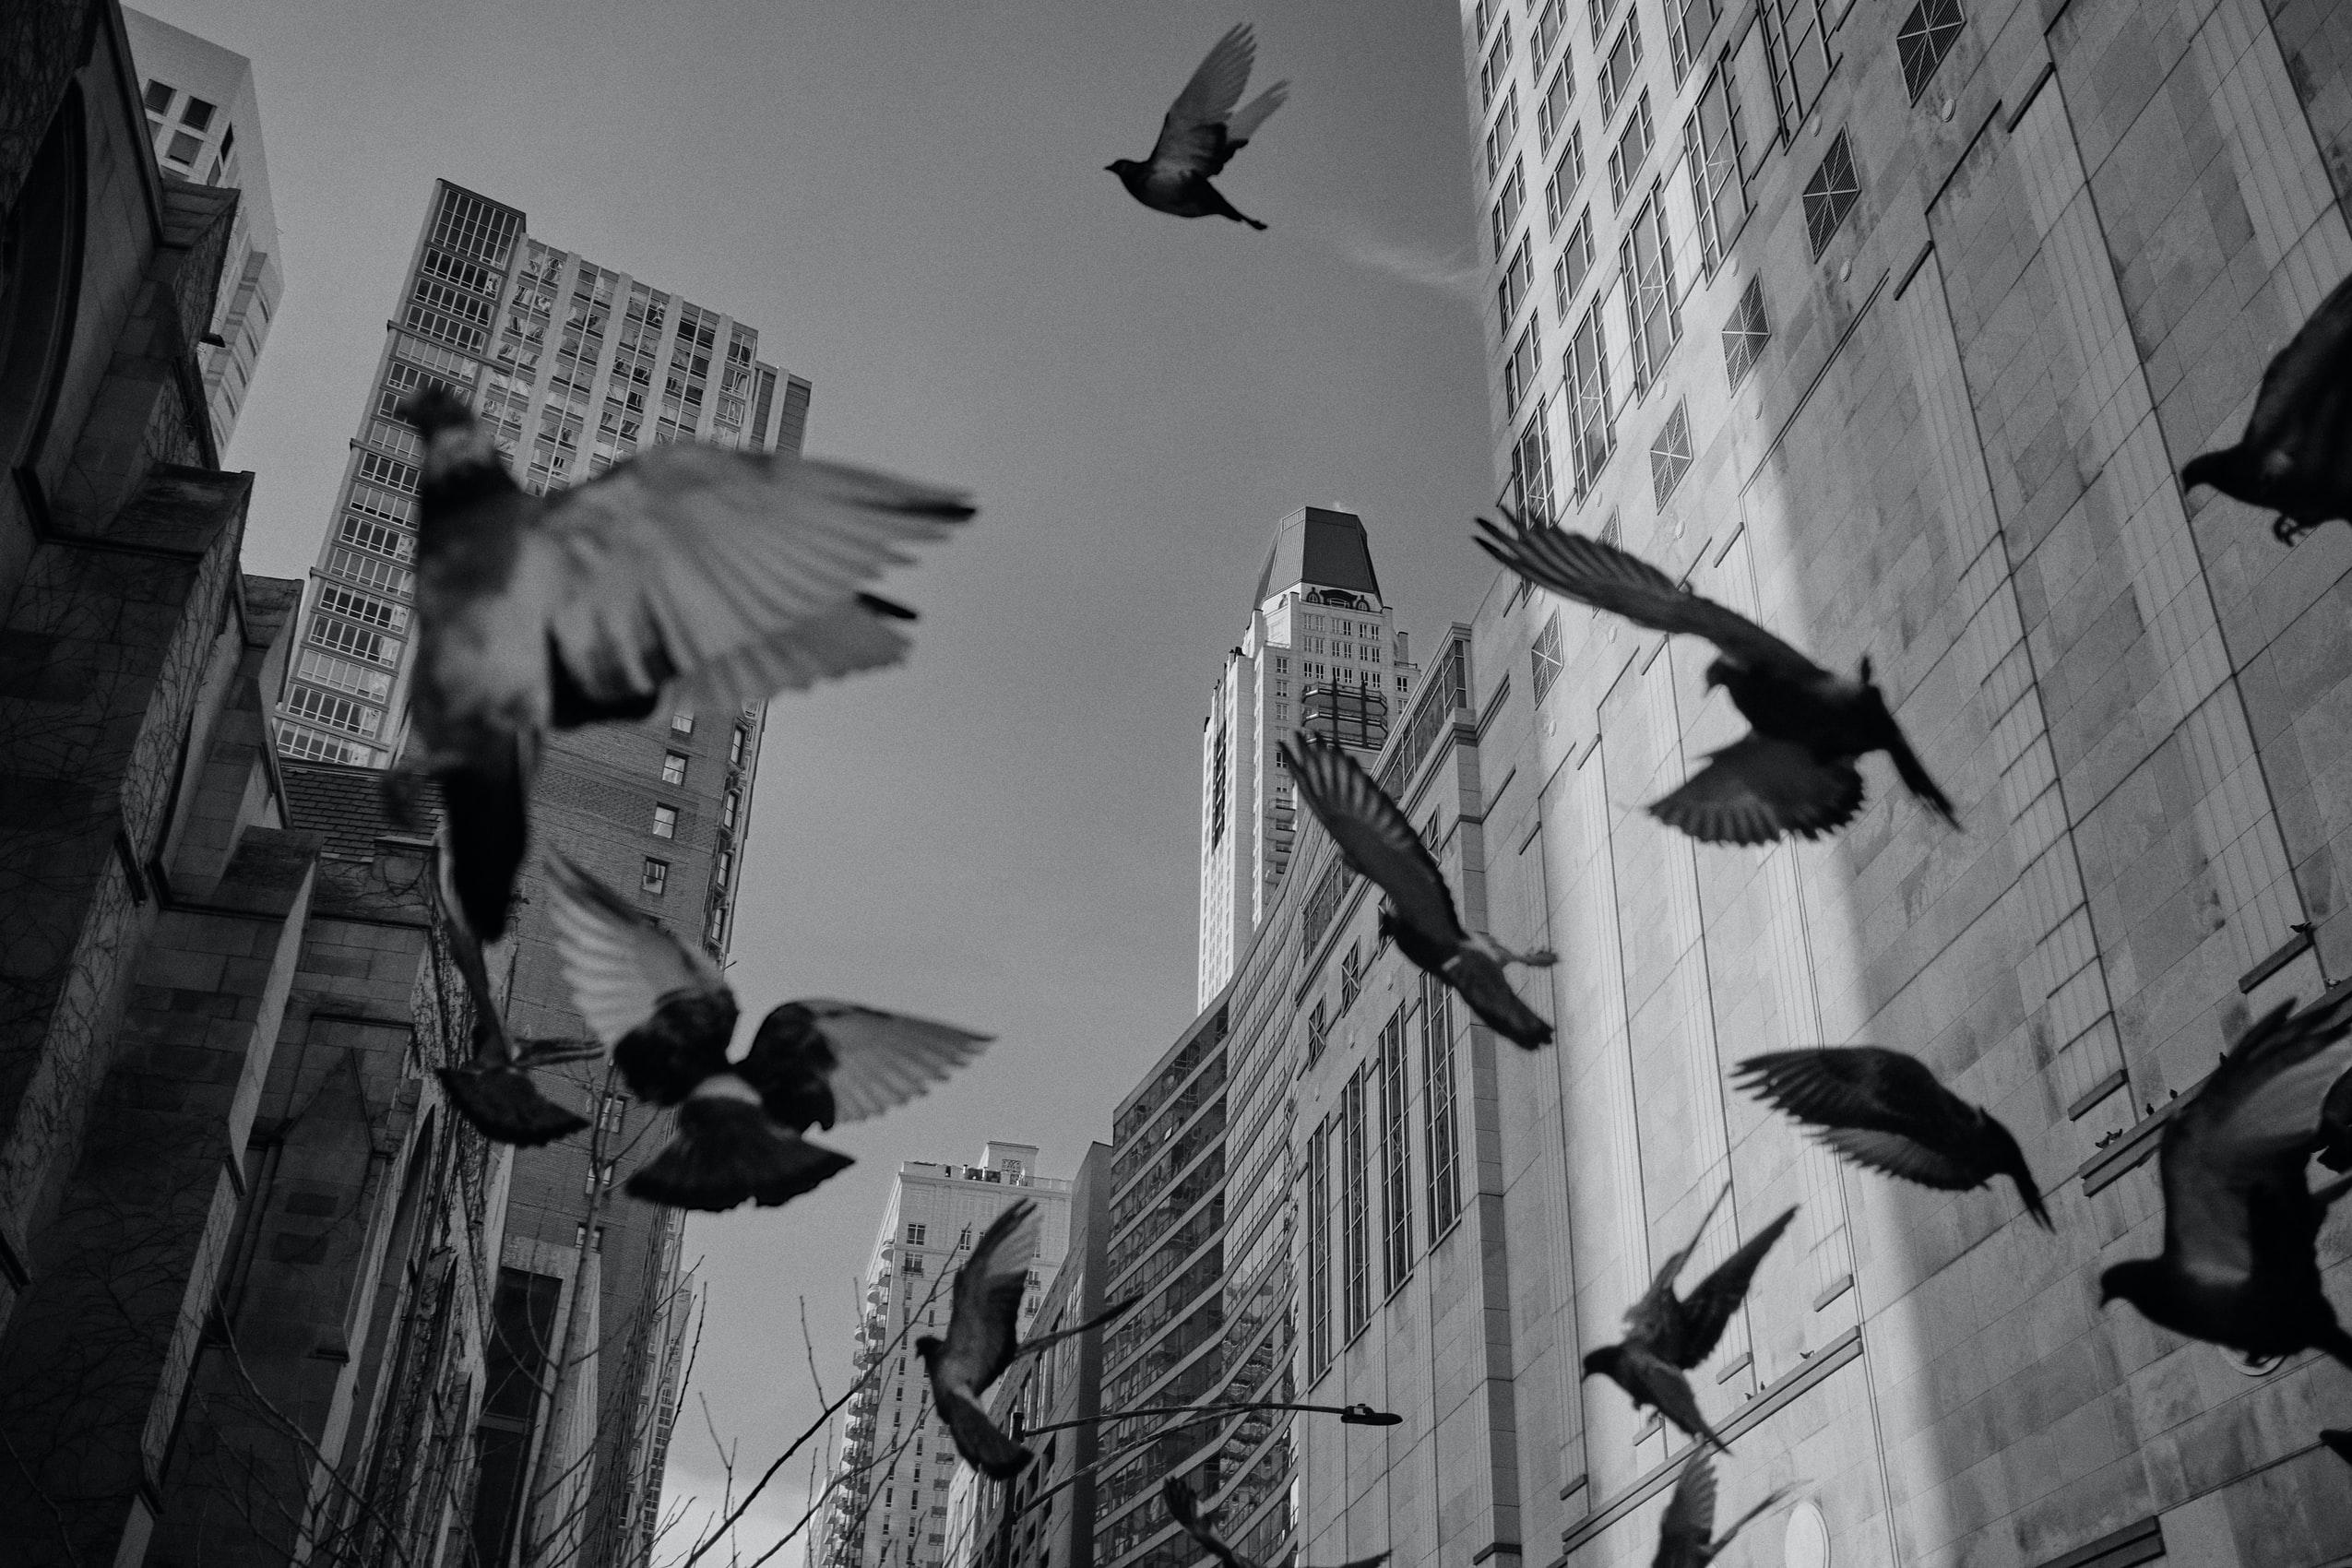 Pigeons in a city, Photo by Ian Battaglia